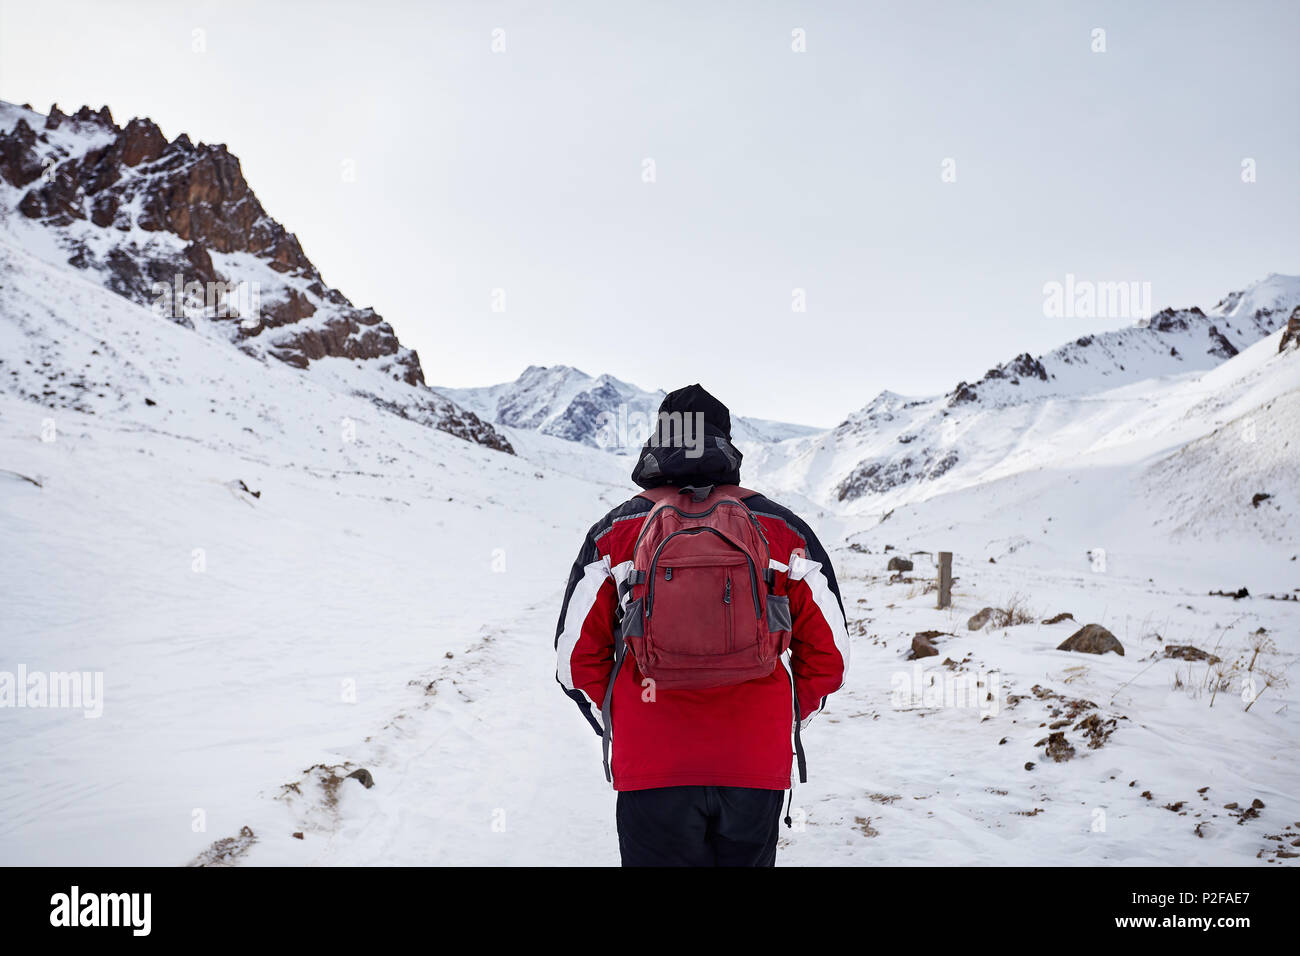 Hiker with red backpack walking around snowy mountain. Freedom of trekking concept. - Stock Image